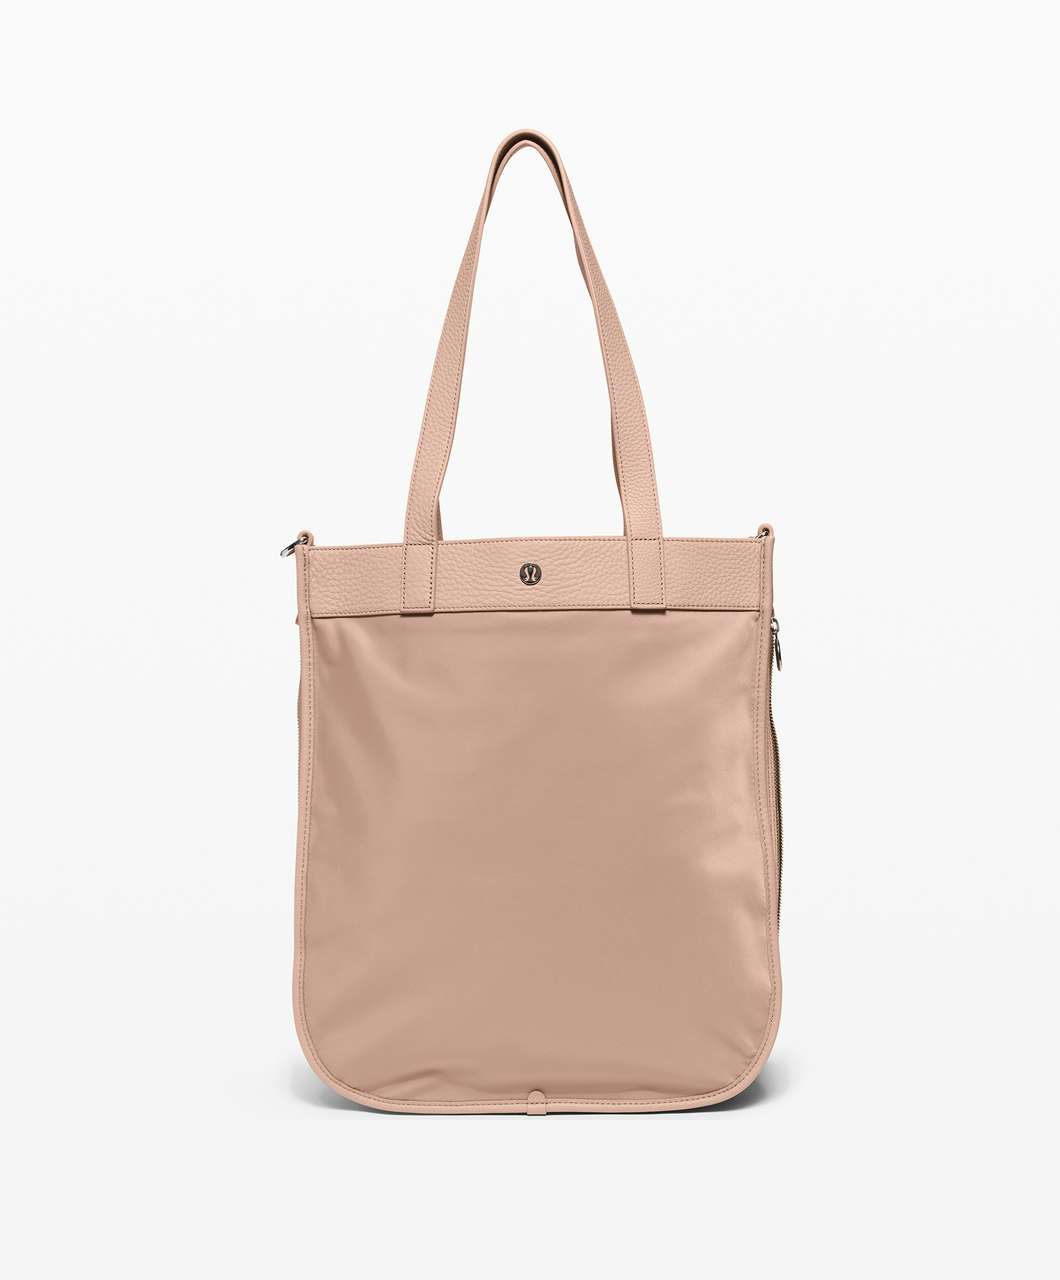 Lululemon Now and Always Tote *15L - Soft Sand / Misty Shell